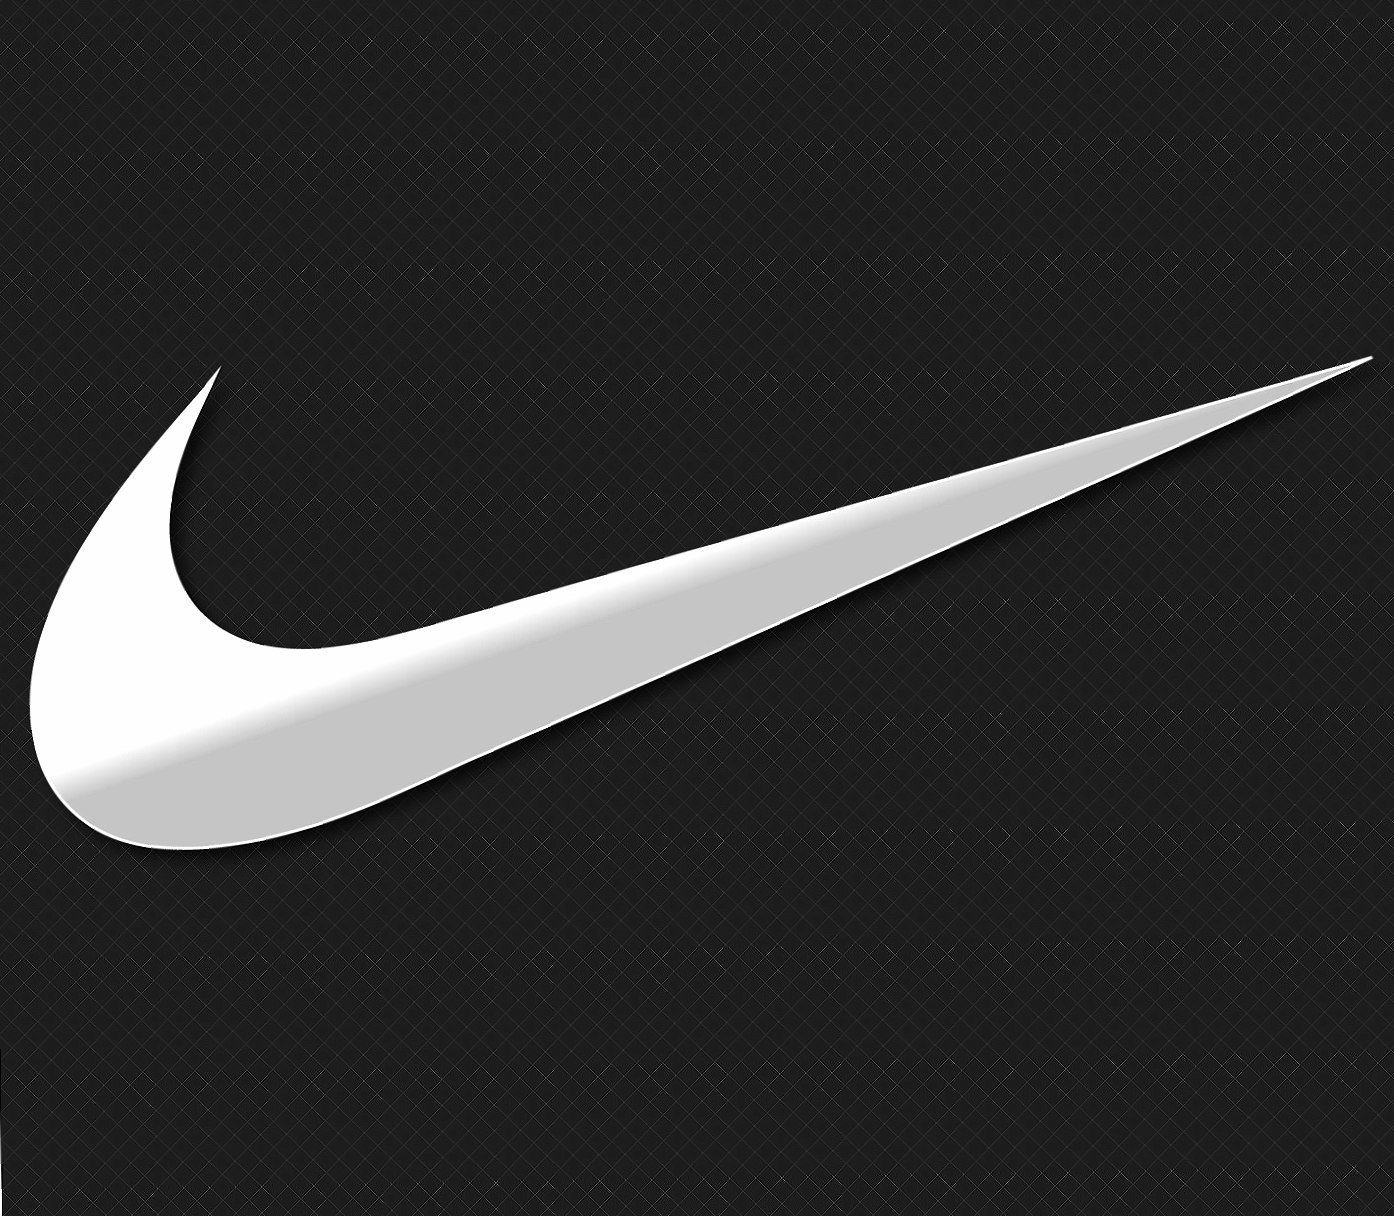 Nike wallpapers HD quality